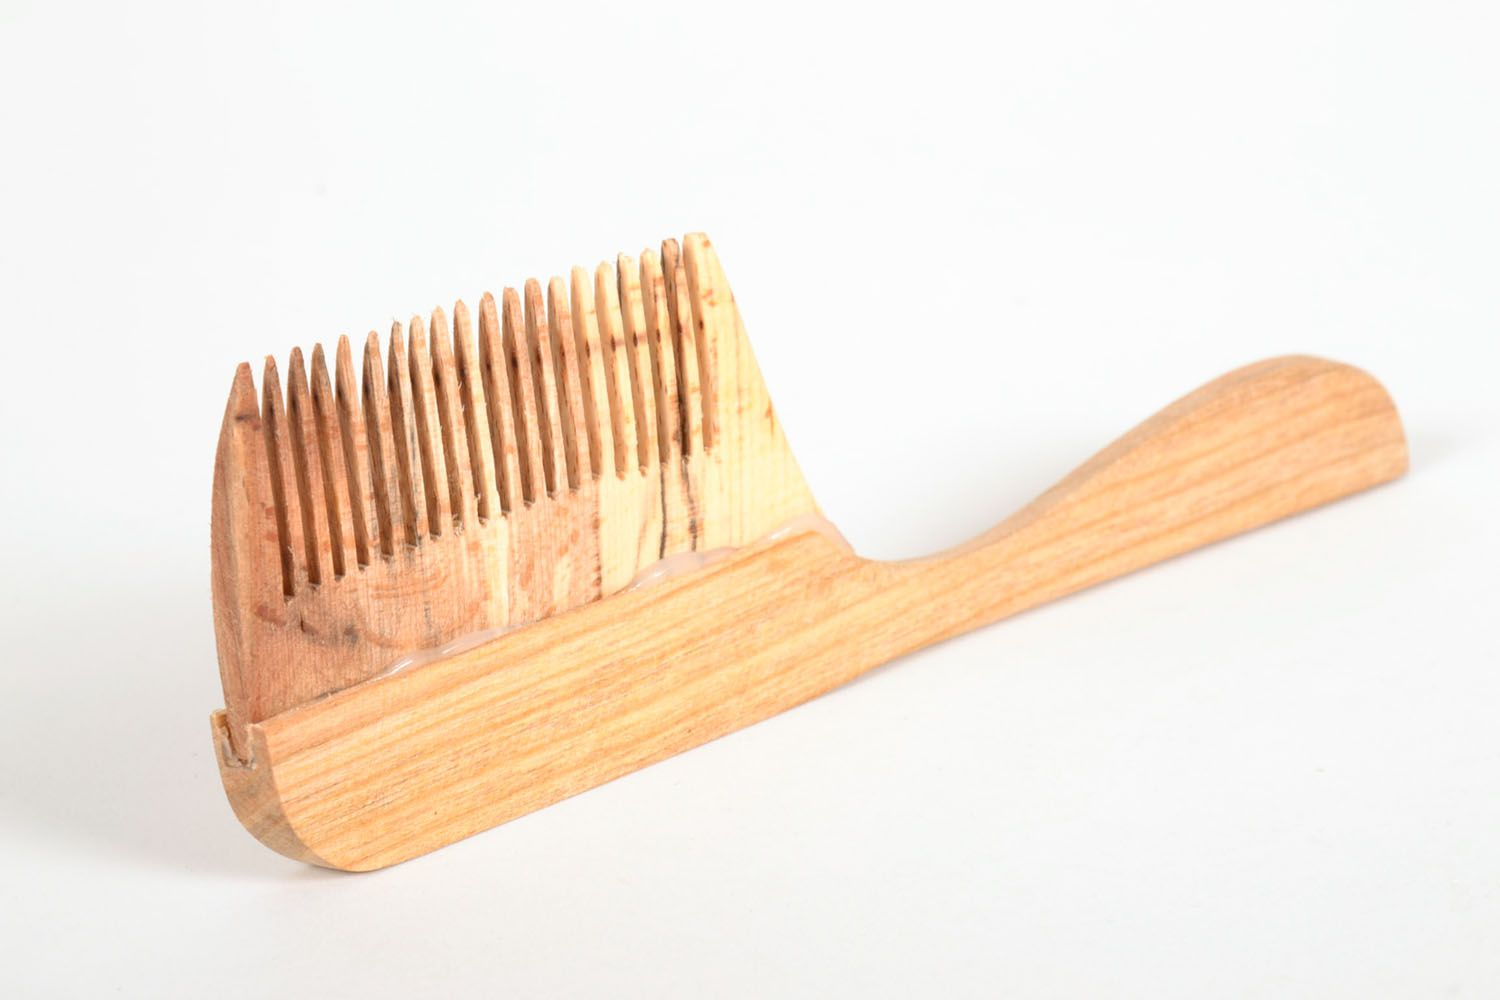 Wooden hair comb photo 4